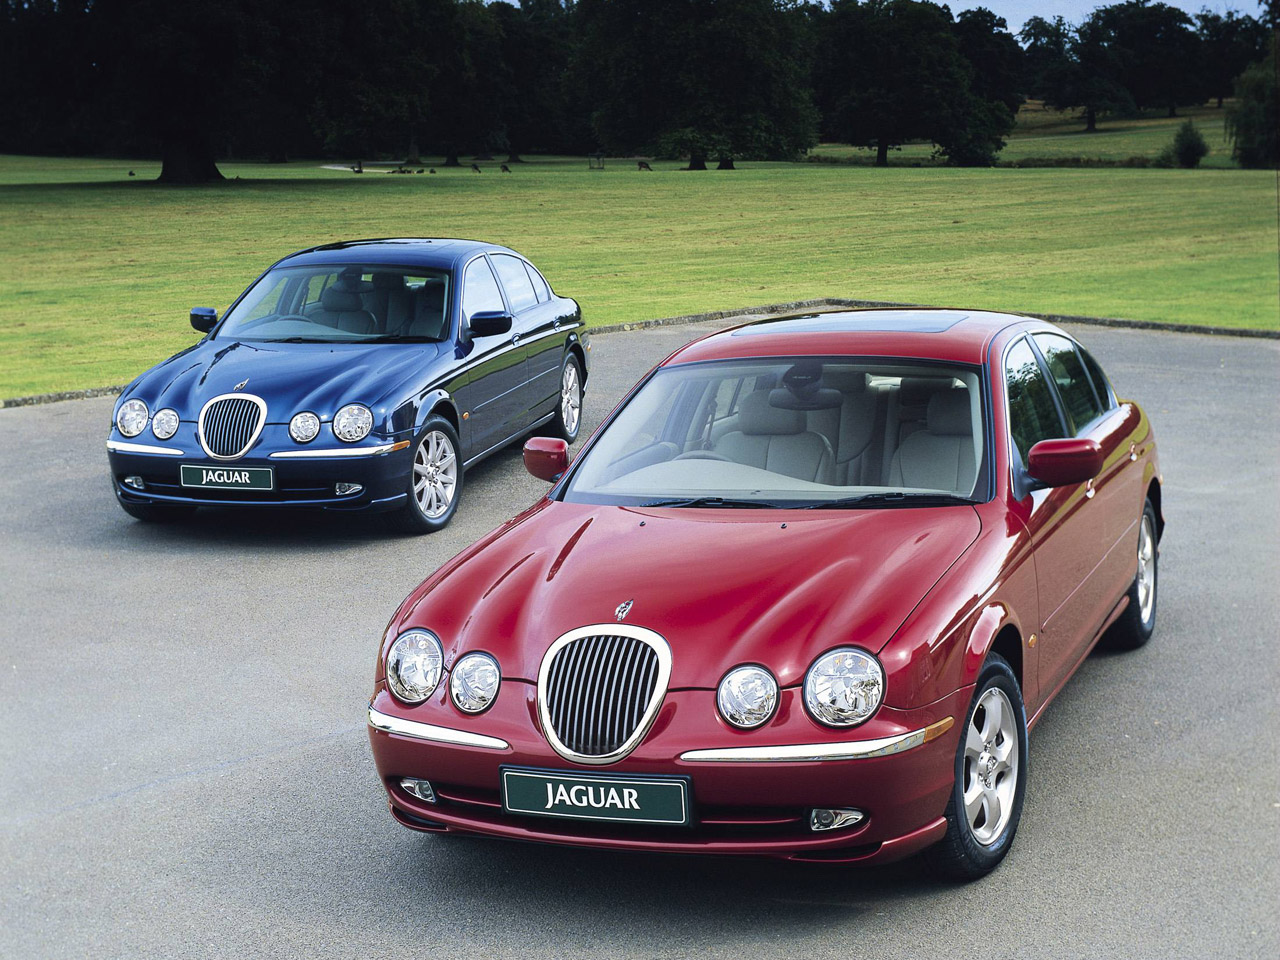 jaguar s type ccx 4 2 i v8 32v type r 395 hp. Black Bedroom Furniture Sets. Home Design Ideas